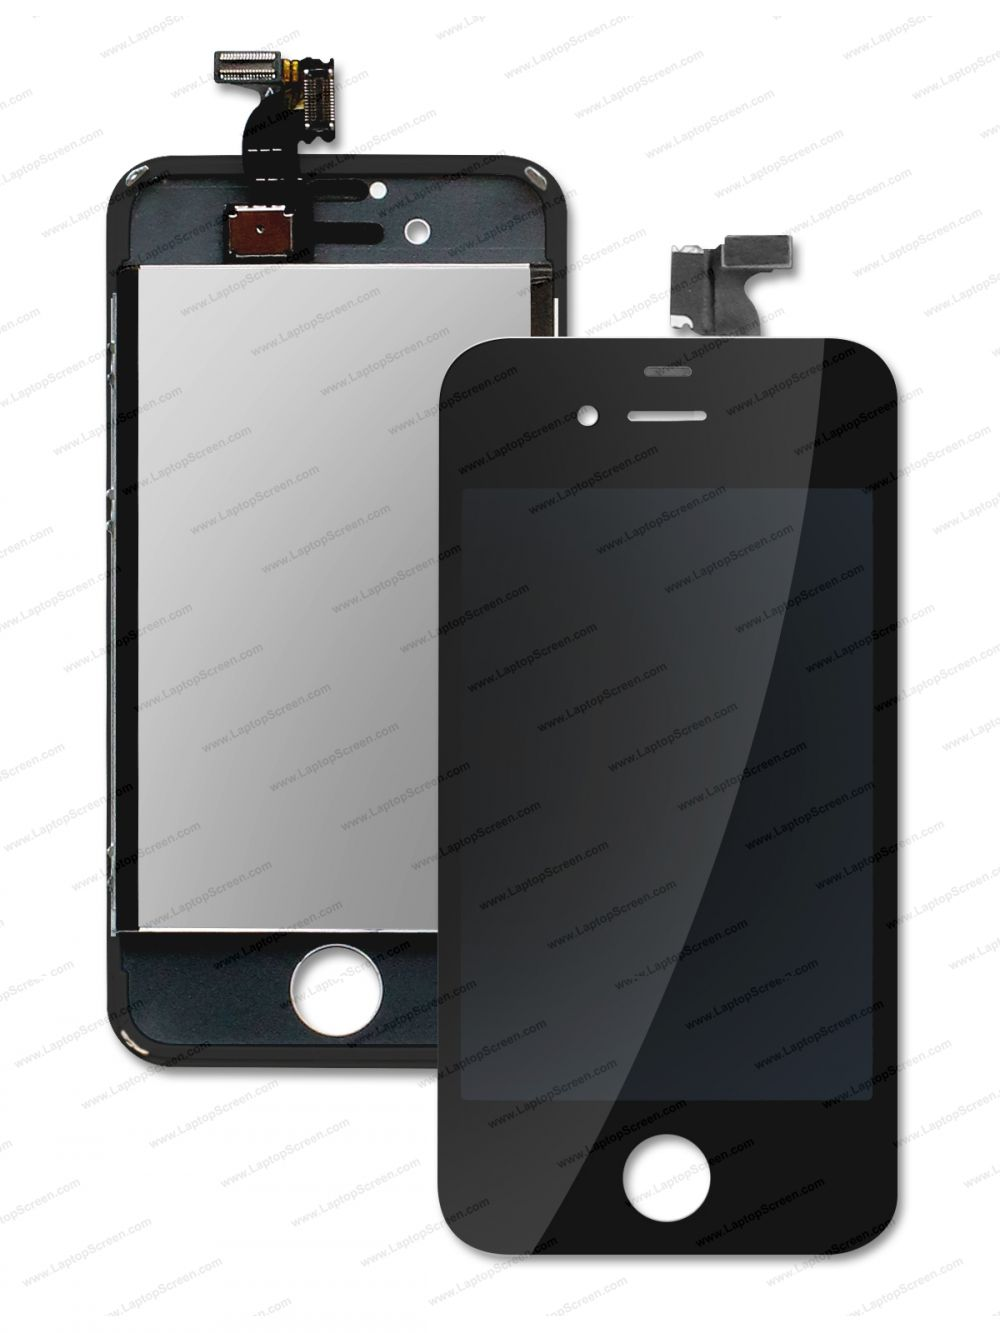 iPhone 4S Screen and Glass Digitizer Replacement and Repair